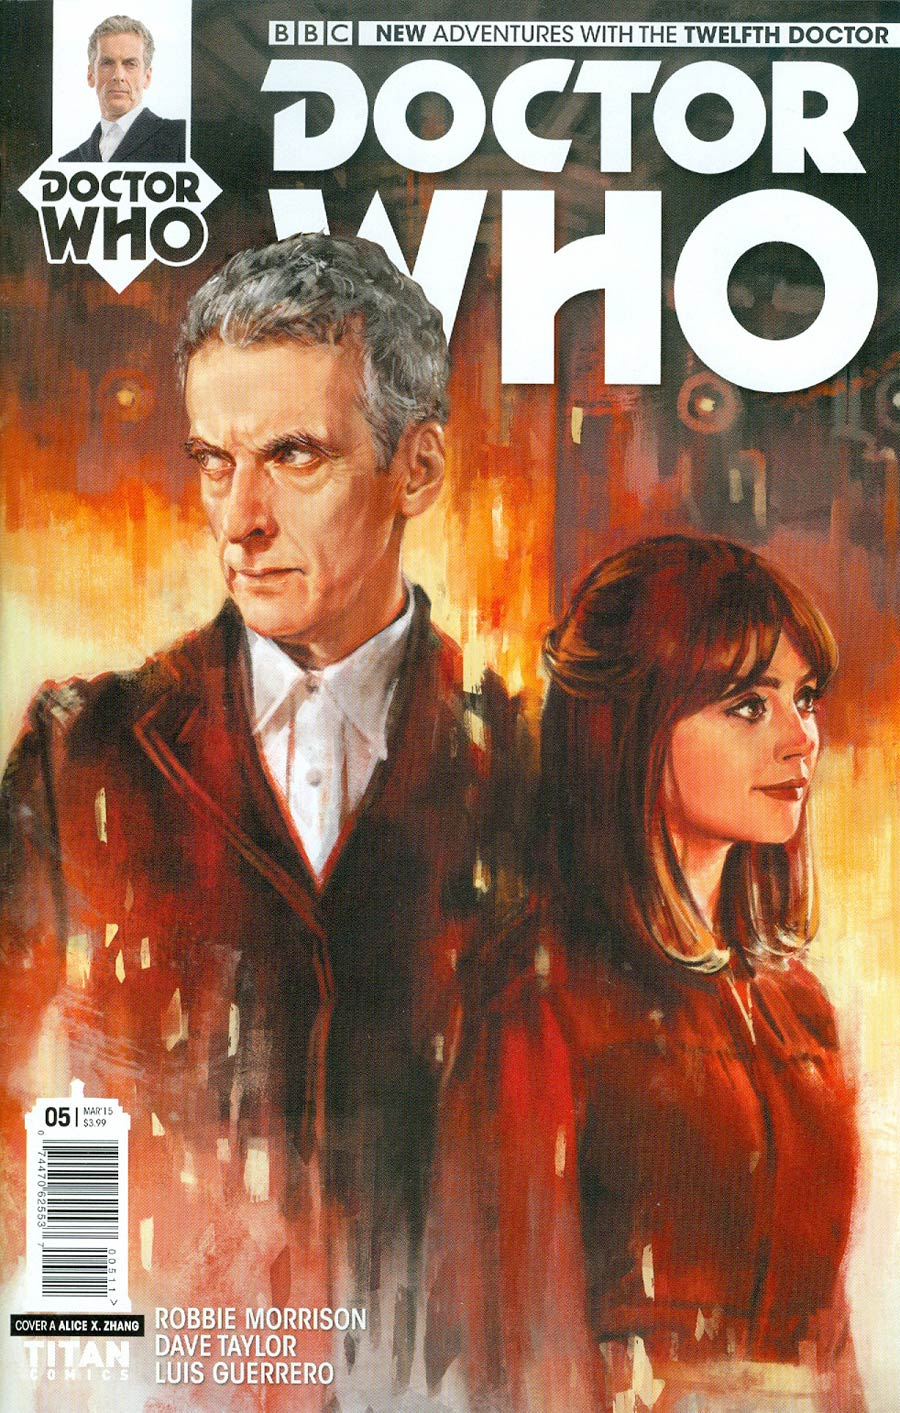 Doctor Who 12th Doctor #5 Cover A Regular Alice X Zhang Cover